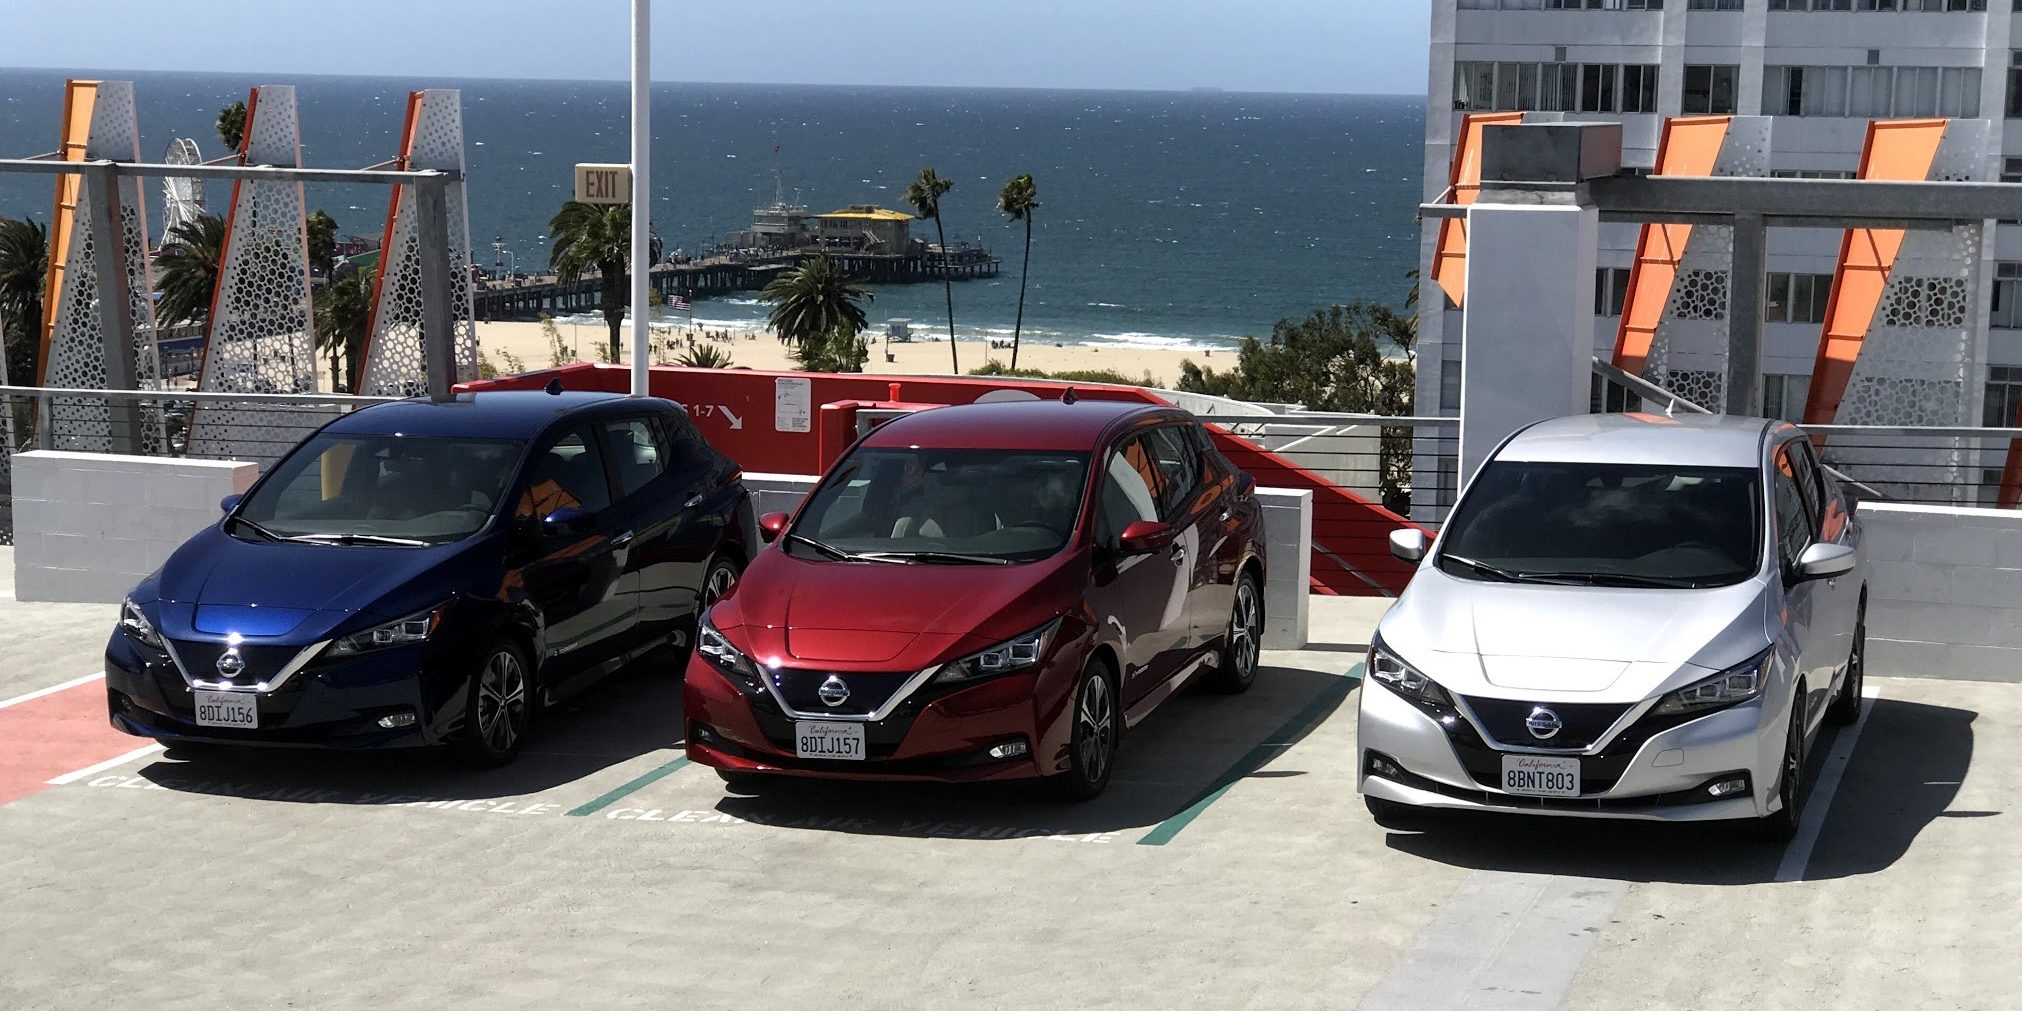 Nissan announces 2019 LEAF US pricing, says longer-range version available 'in the future'